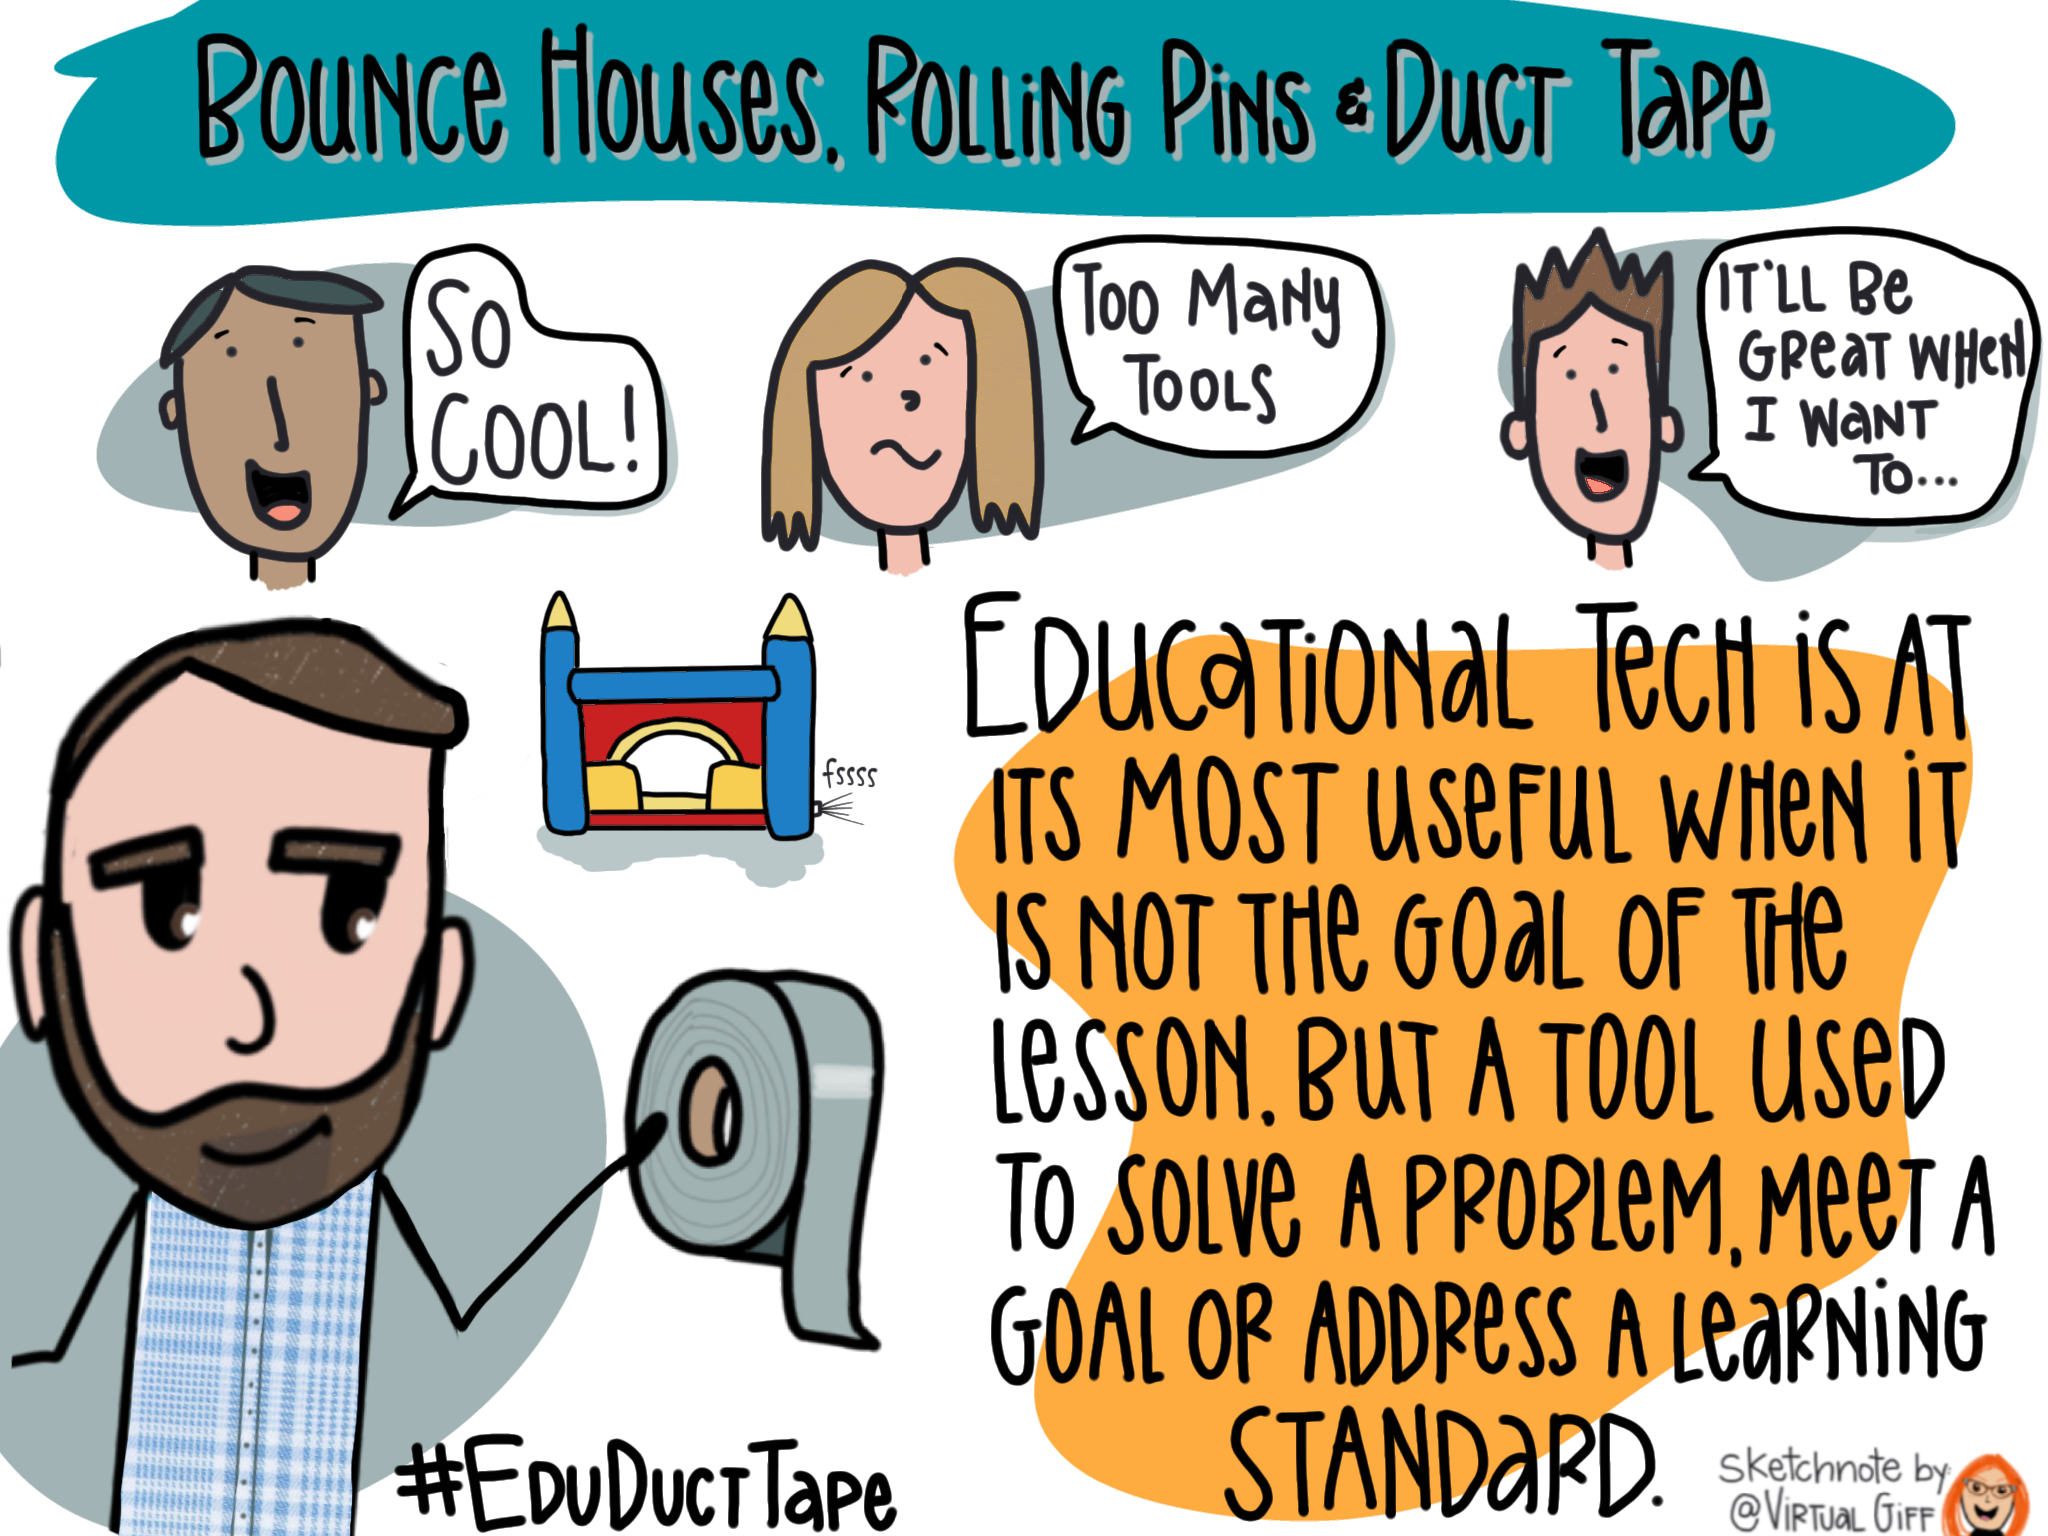 """This sketchnote features the title """"Bounce Houses, Rolling Pins, and Duct Tape."""" It shows pictures of 3 different educators, one saying """"So Cool!"""" another saying """"Too many tools!"""" and another saying """"It'll be great when I want to...."""" Jake is holding a roll of duct tape and looking at a bouncy house with a hole in it. The bounce house is making a """"fsss"""" noise. Next to the image is the quote """"Educational technology is at its most useful when it is not the goal of the lesson, but a tool used to solve a prob- lem, meet a goal, or address a learning standard."""""""